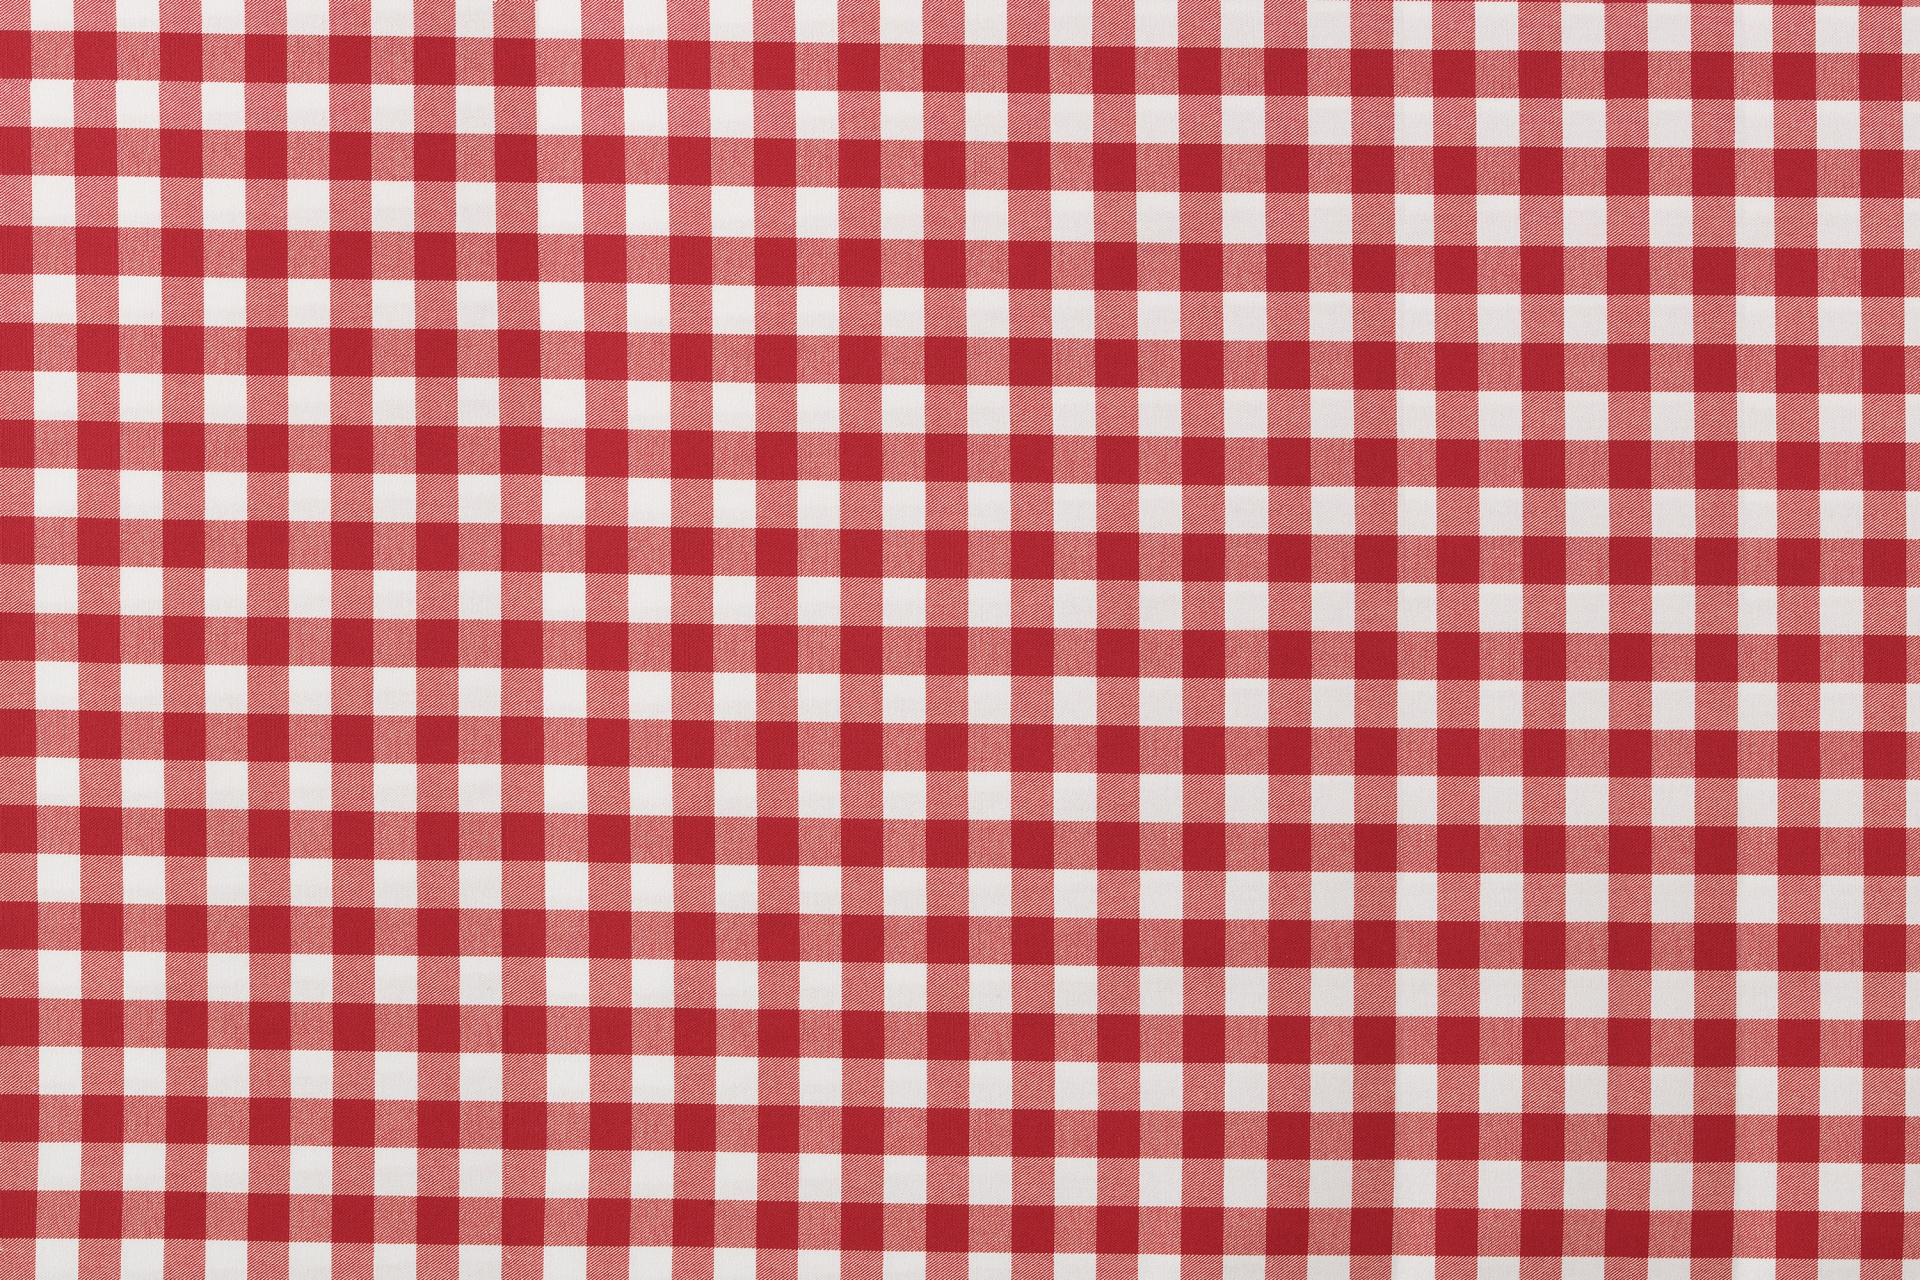 checkered-table-cloth-1